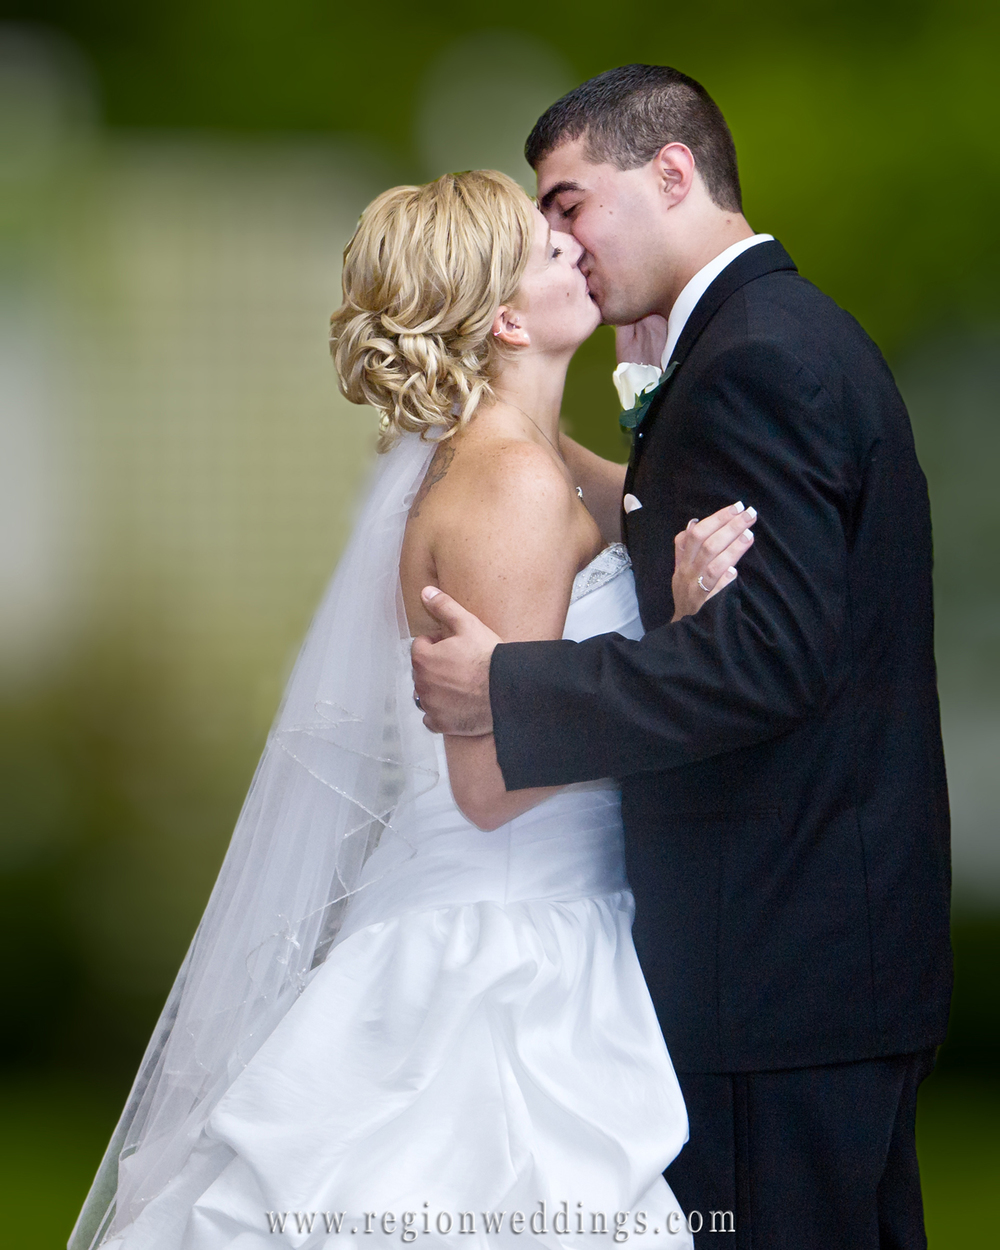 First kiss at an outdoor wedding in Portage, Indiana.